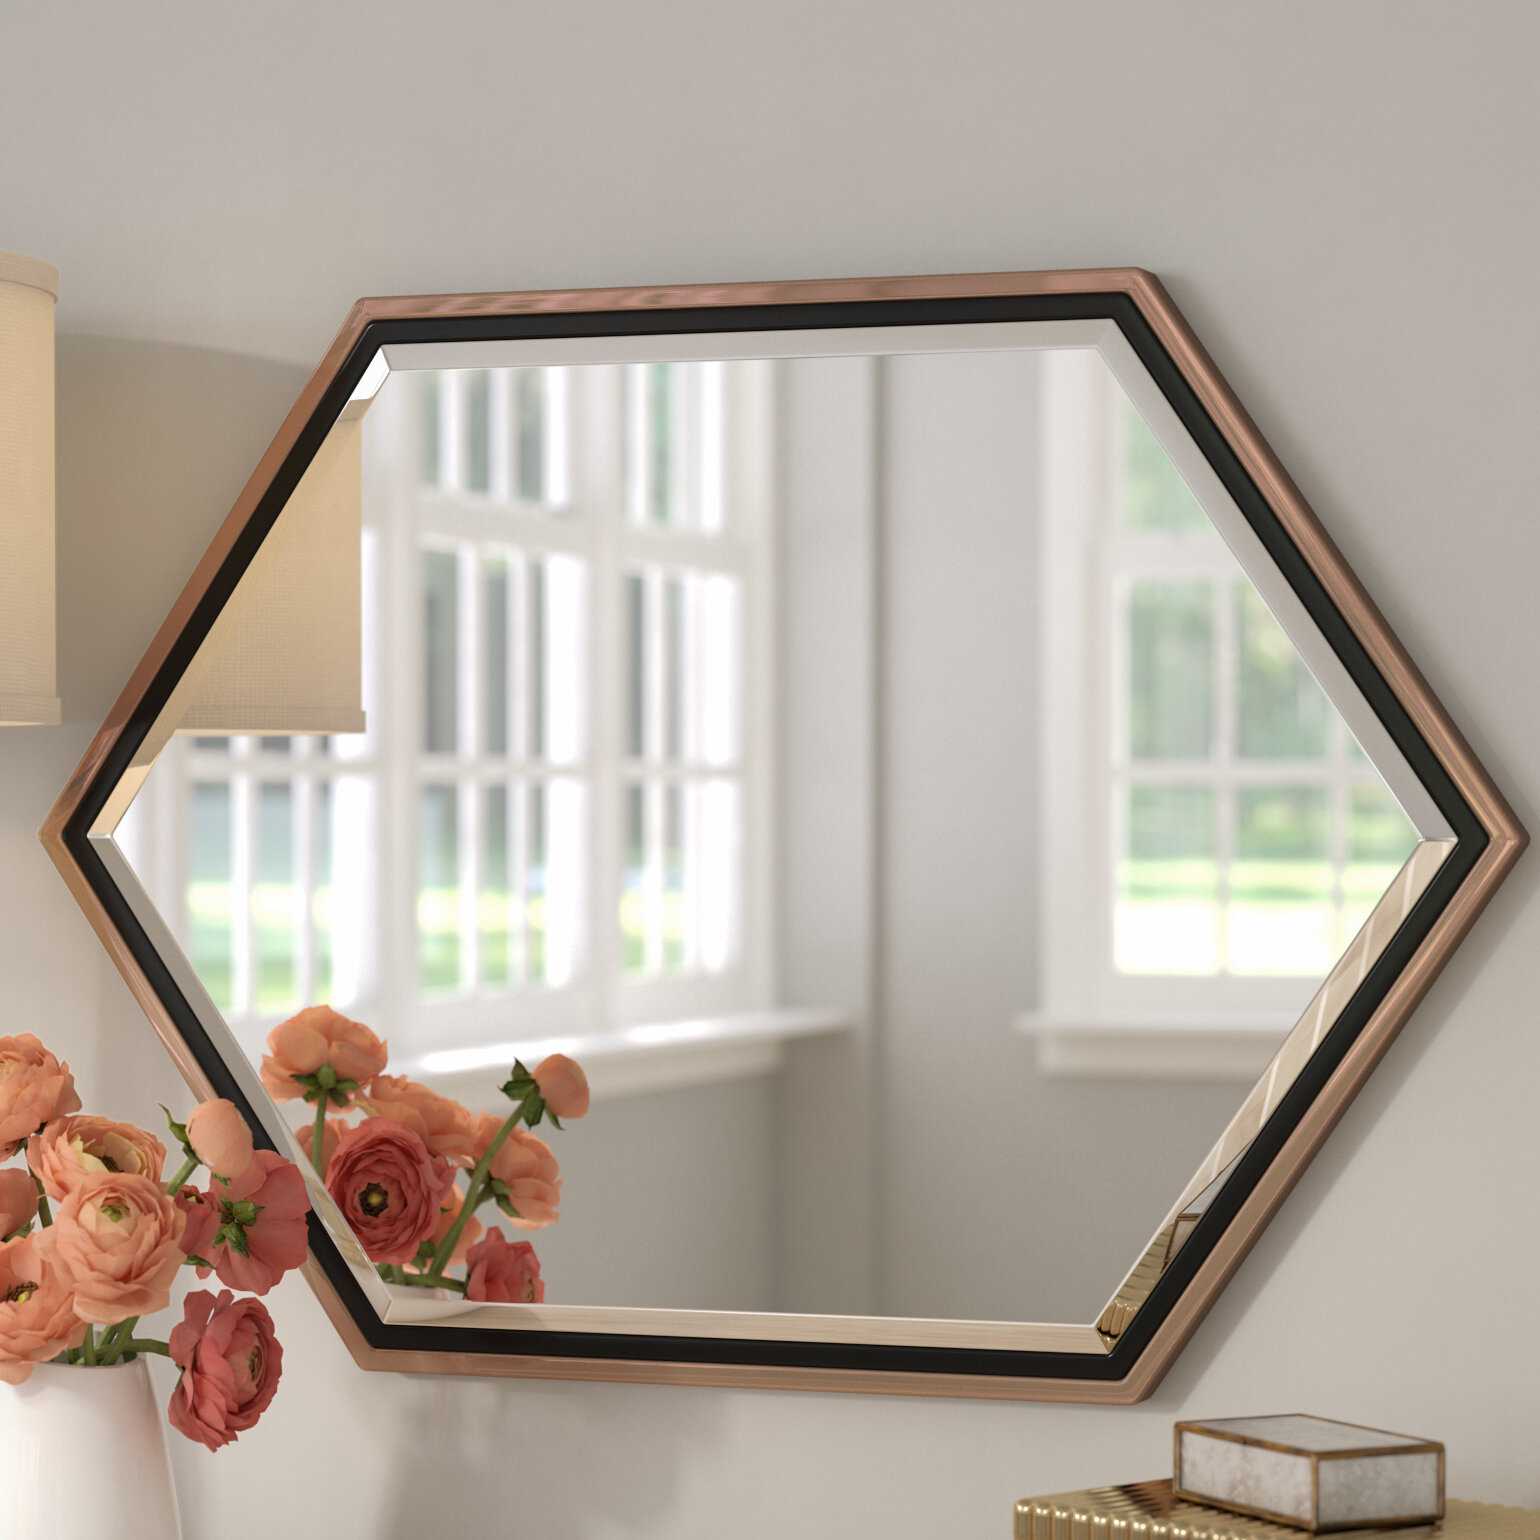 Broadmeadow Accent Wall Mirror | Wayfair Inside Hussain Tile Accent Wall Mirrors (Image 7 of 20)